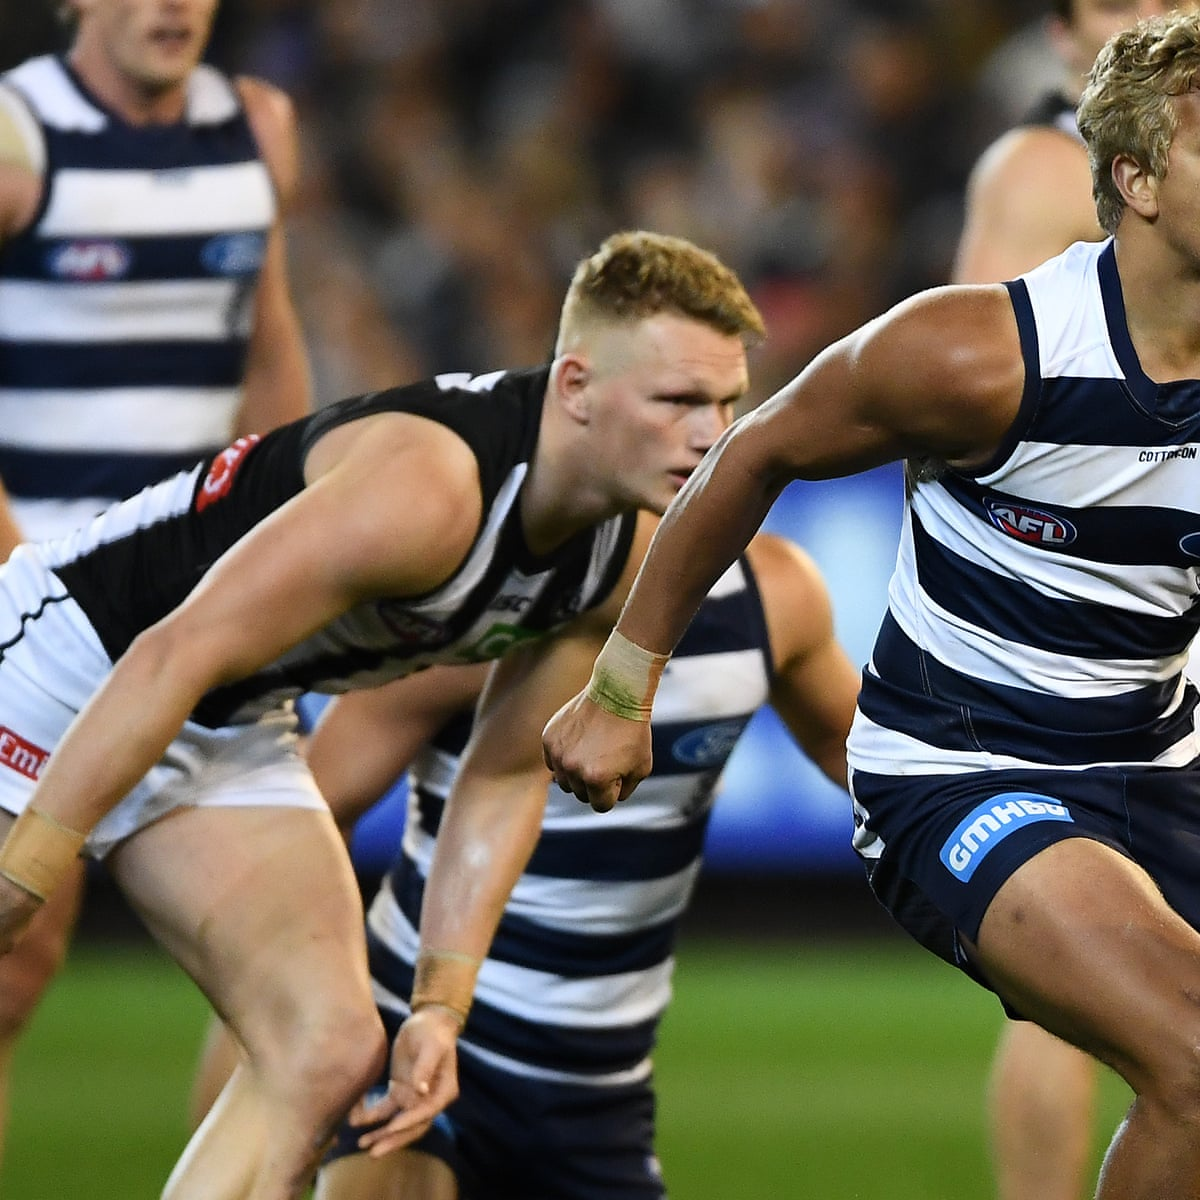 Afl Colours Clash Leaves Collingwood Geelong Fans Fuming Afl The Guardian